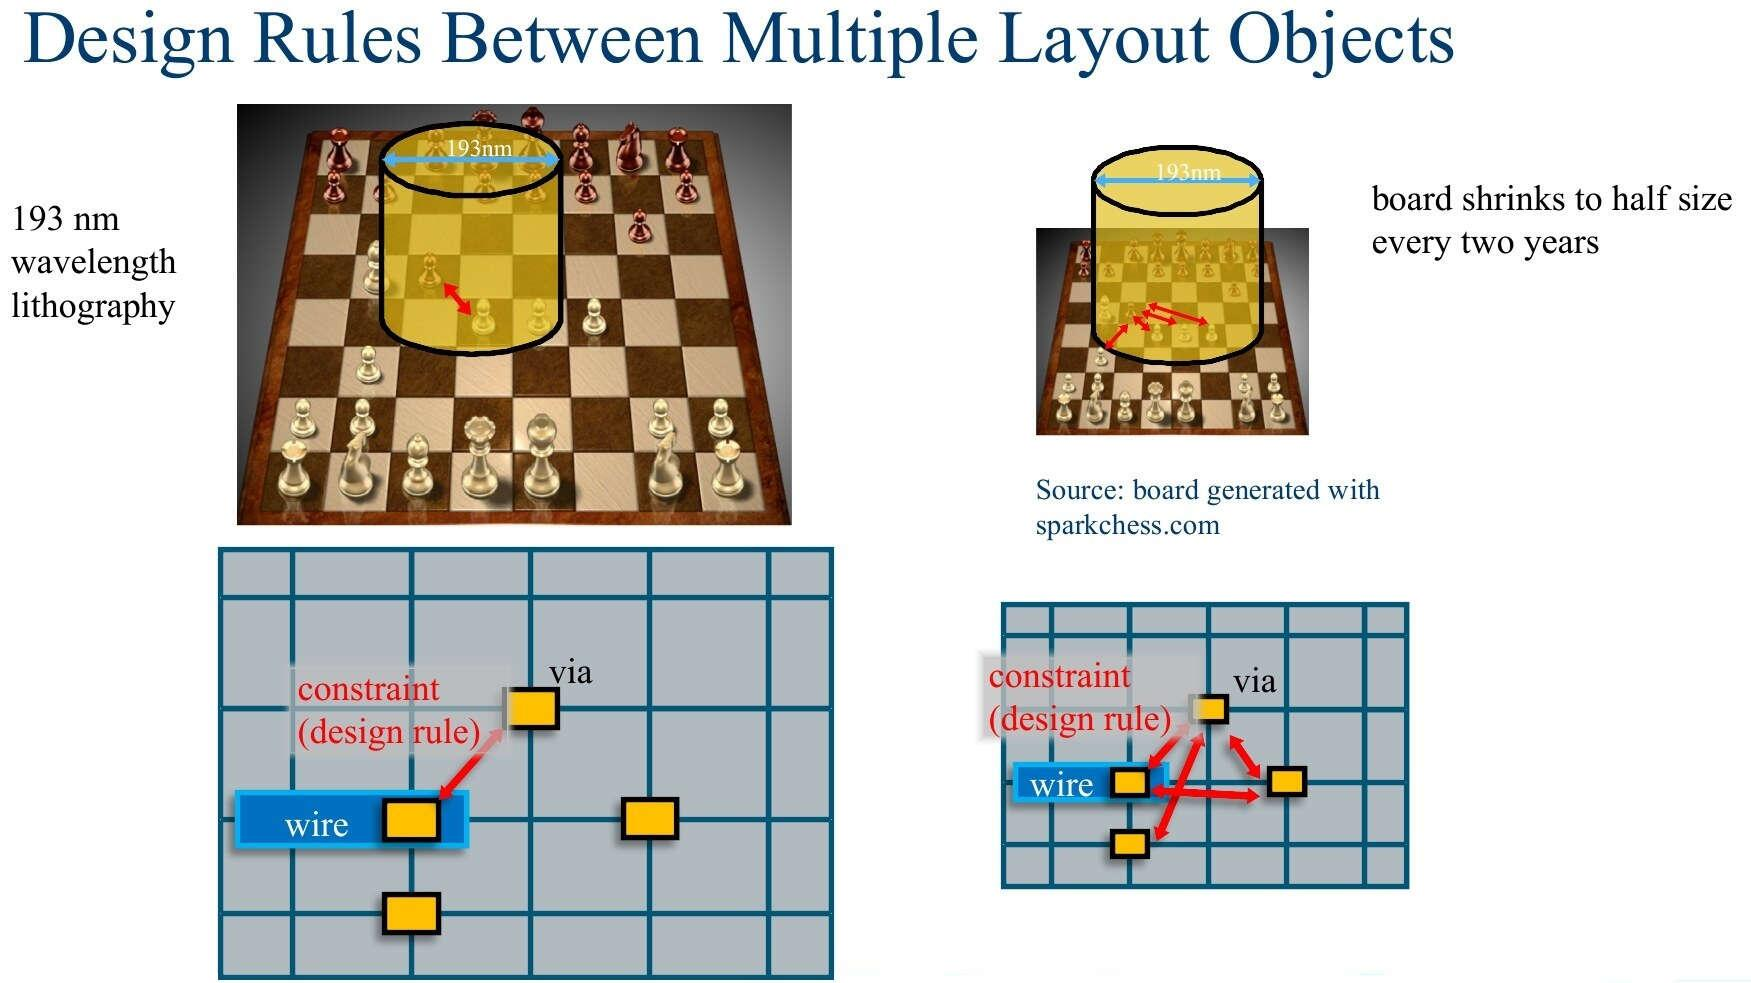 Design rules between multiple layout objects